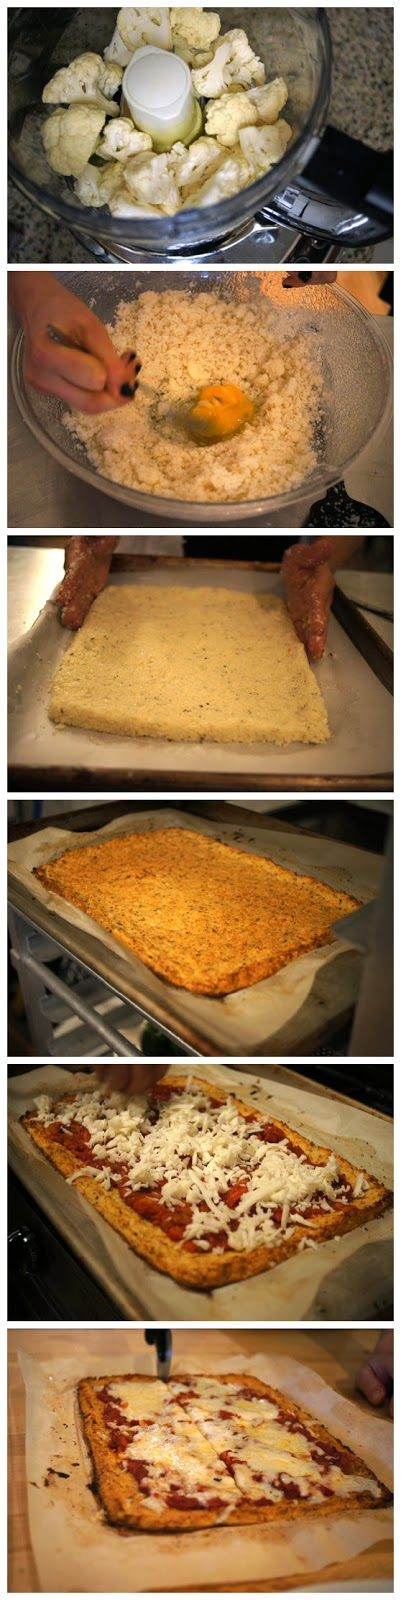 Cauliflower Pizza Crust, I would need to omit the oregano and use something else...